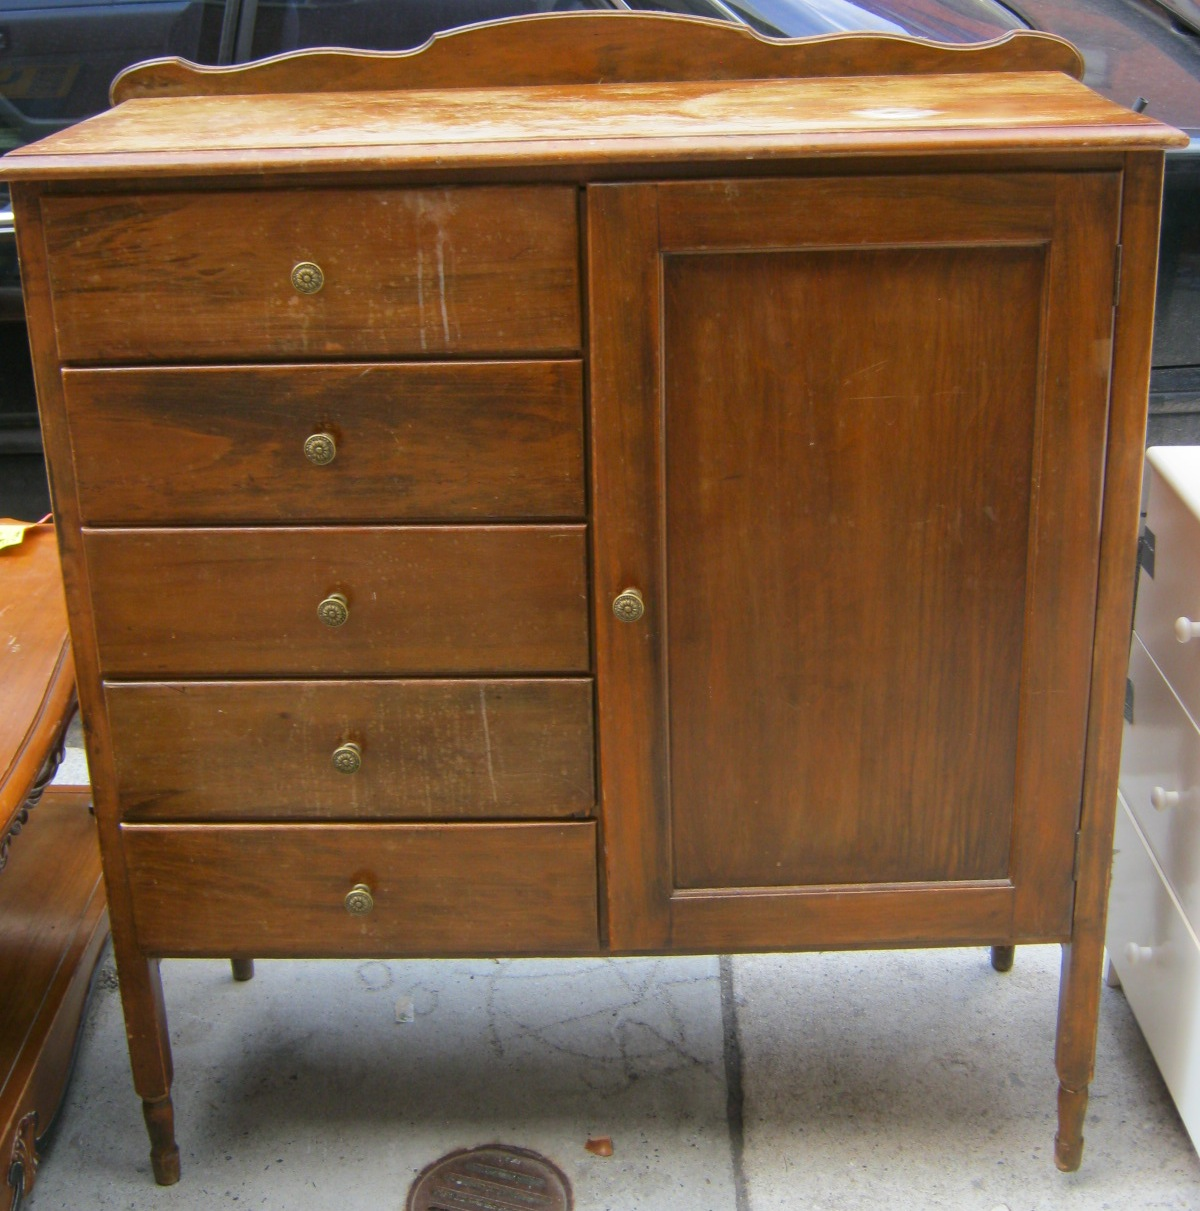 Uhuru Furniture Amp Collectibles Chiffarobe Sold